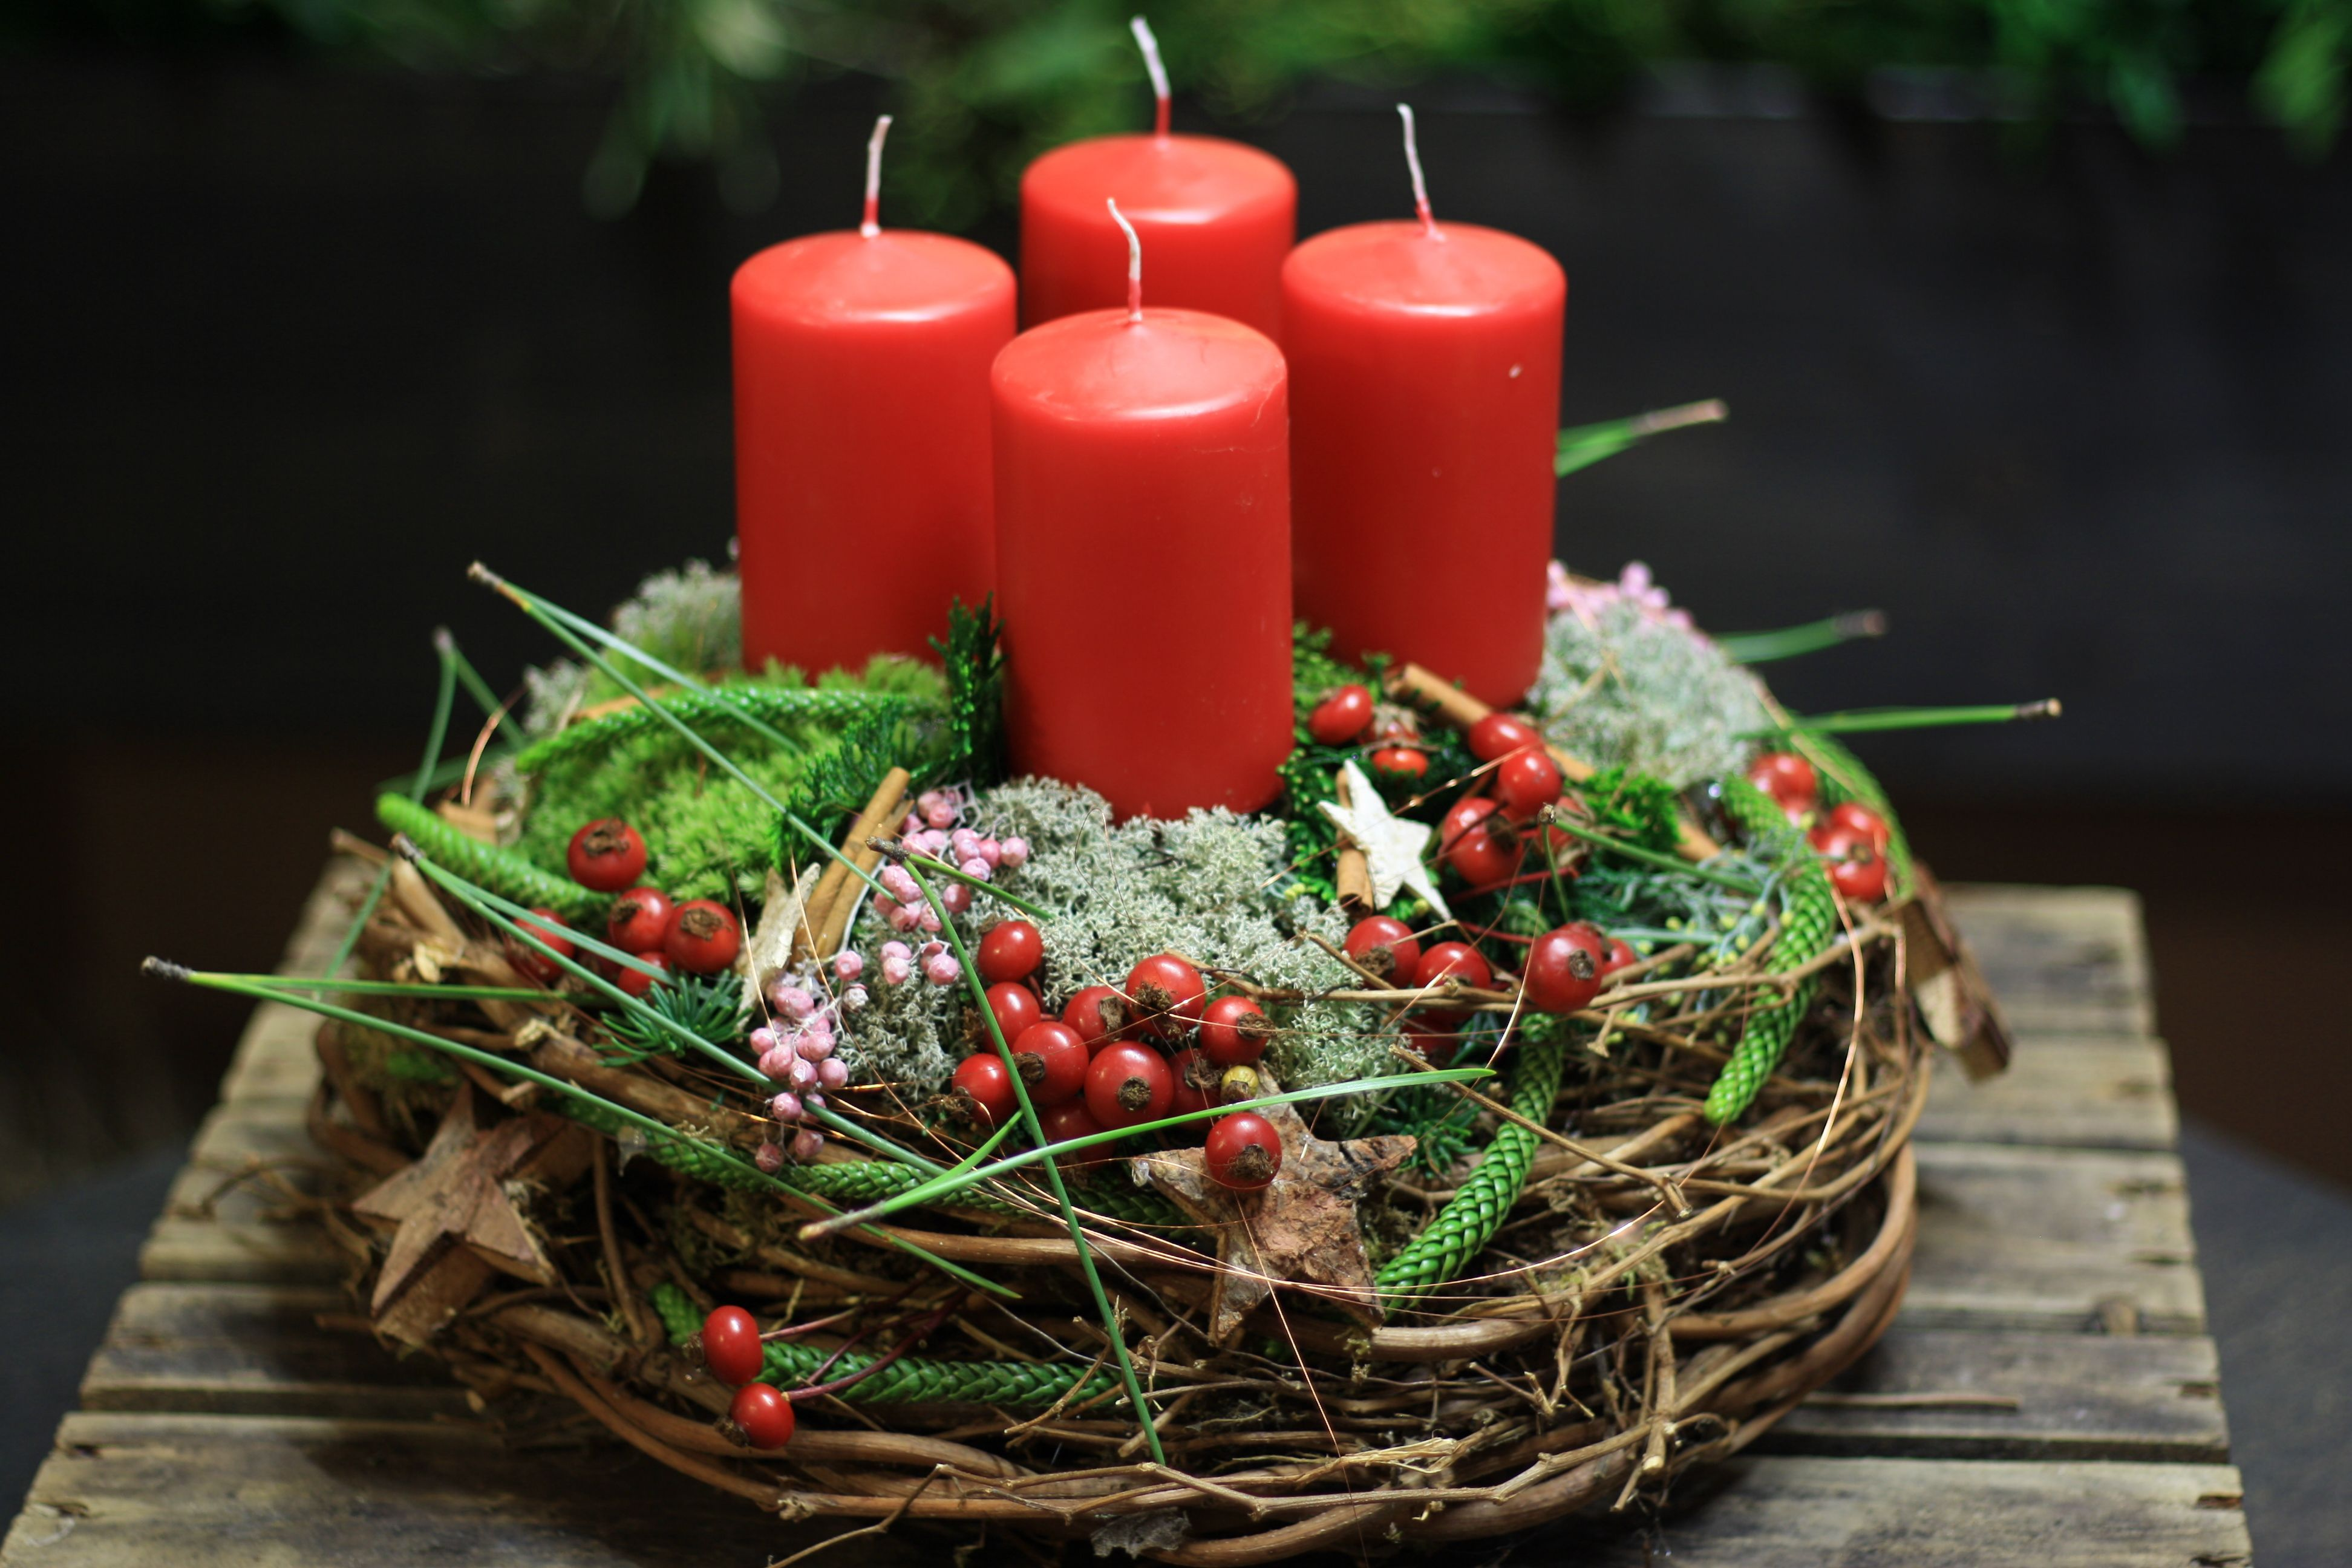 """Photo of Advent wreath """"Rote Liebe"""" made of willow branches with red candles, naturally …"""